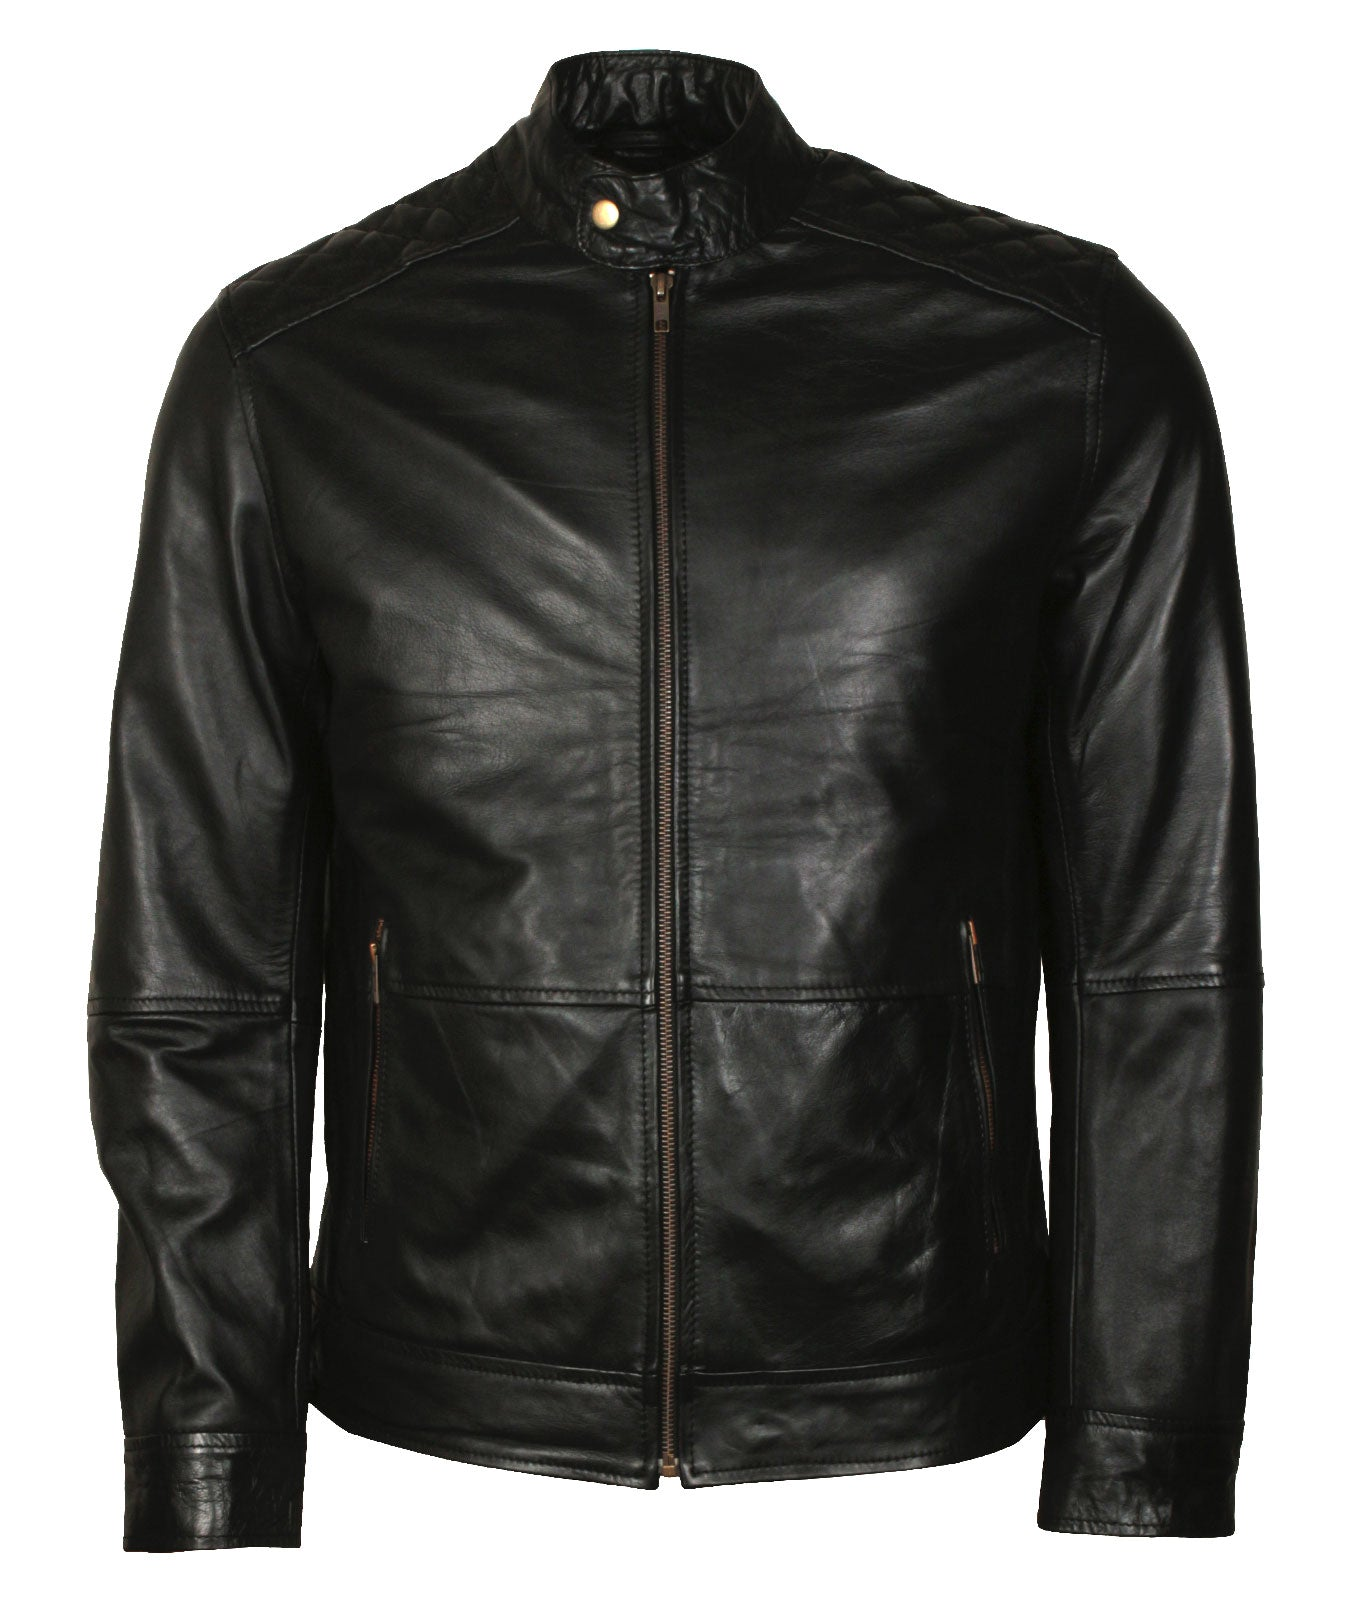 American Skull Leather Biker Jacket